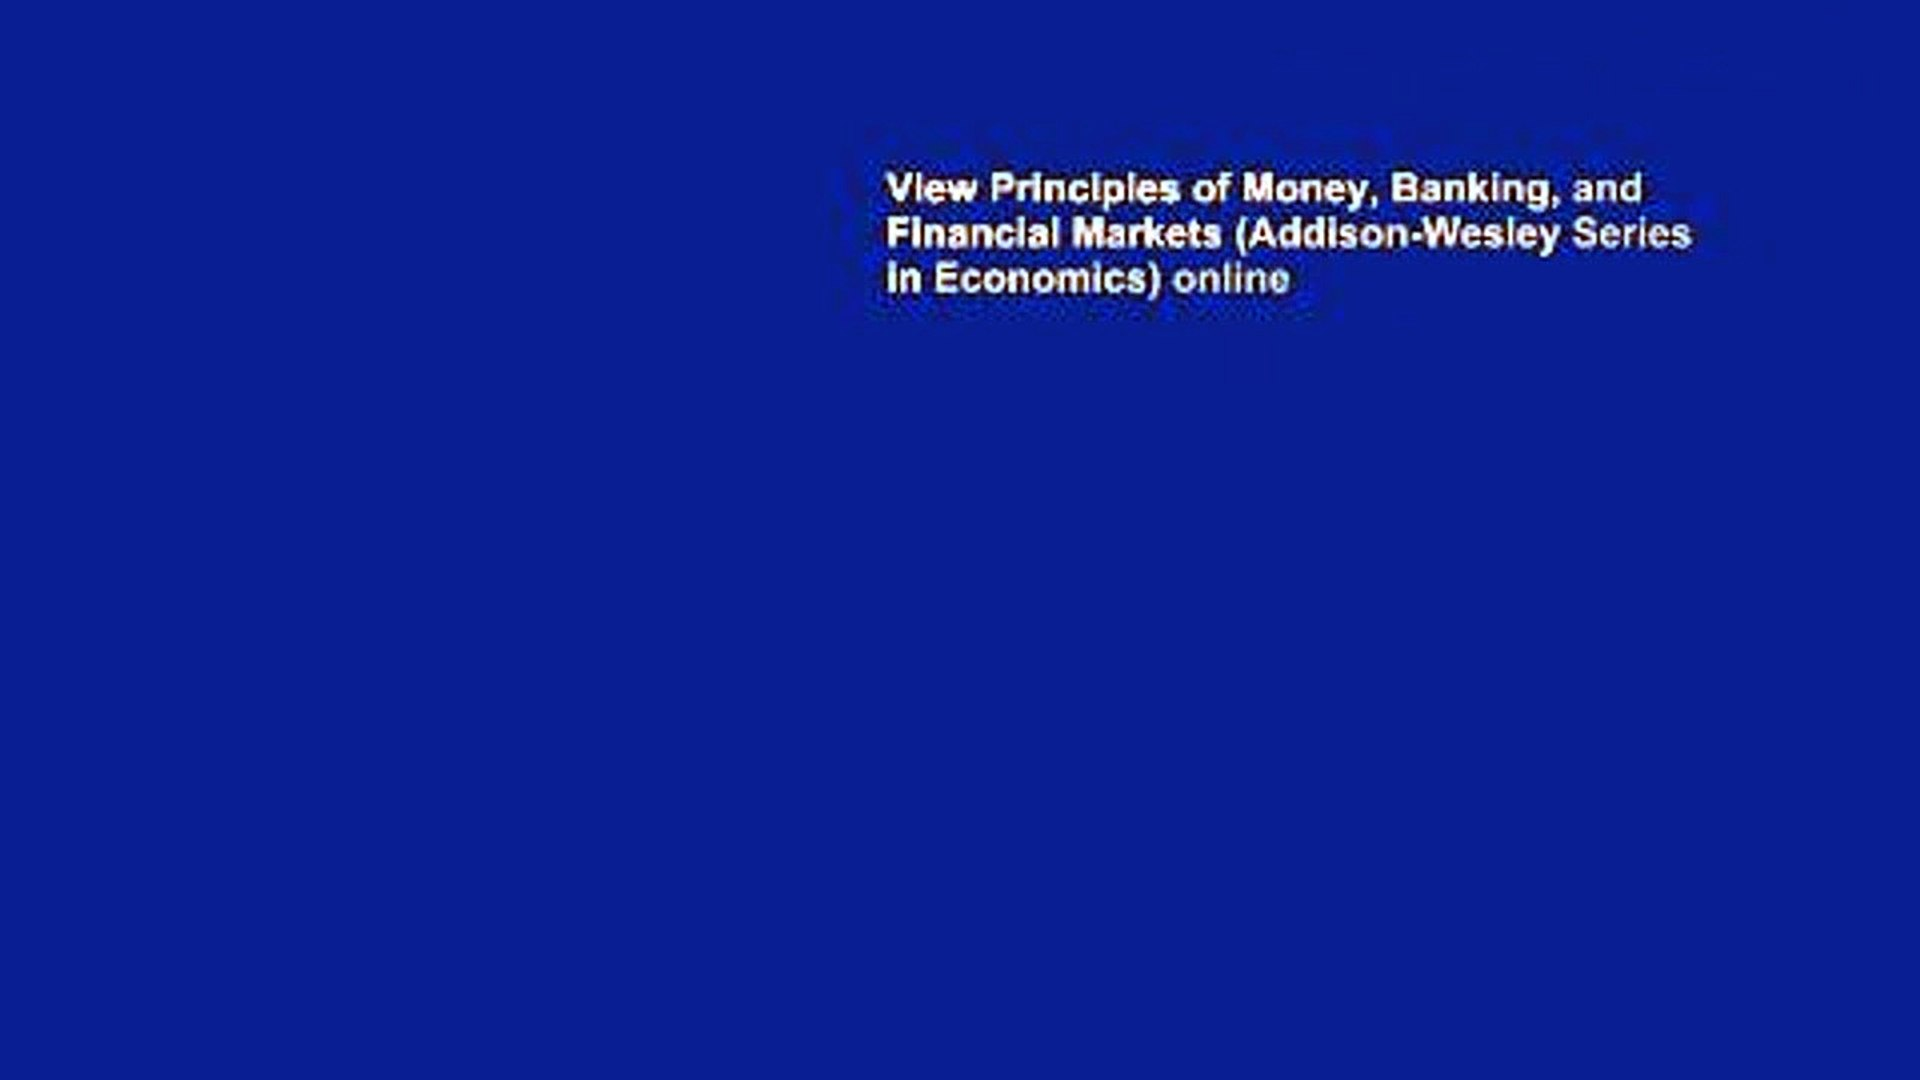 View Principles of Money, Banking, and Financial Markets (Addison-Wesley Series in Economics) online